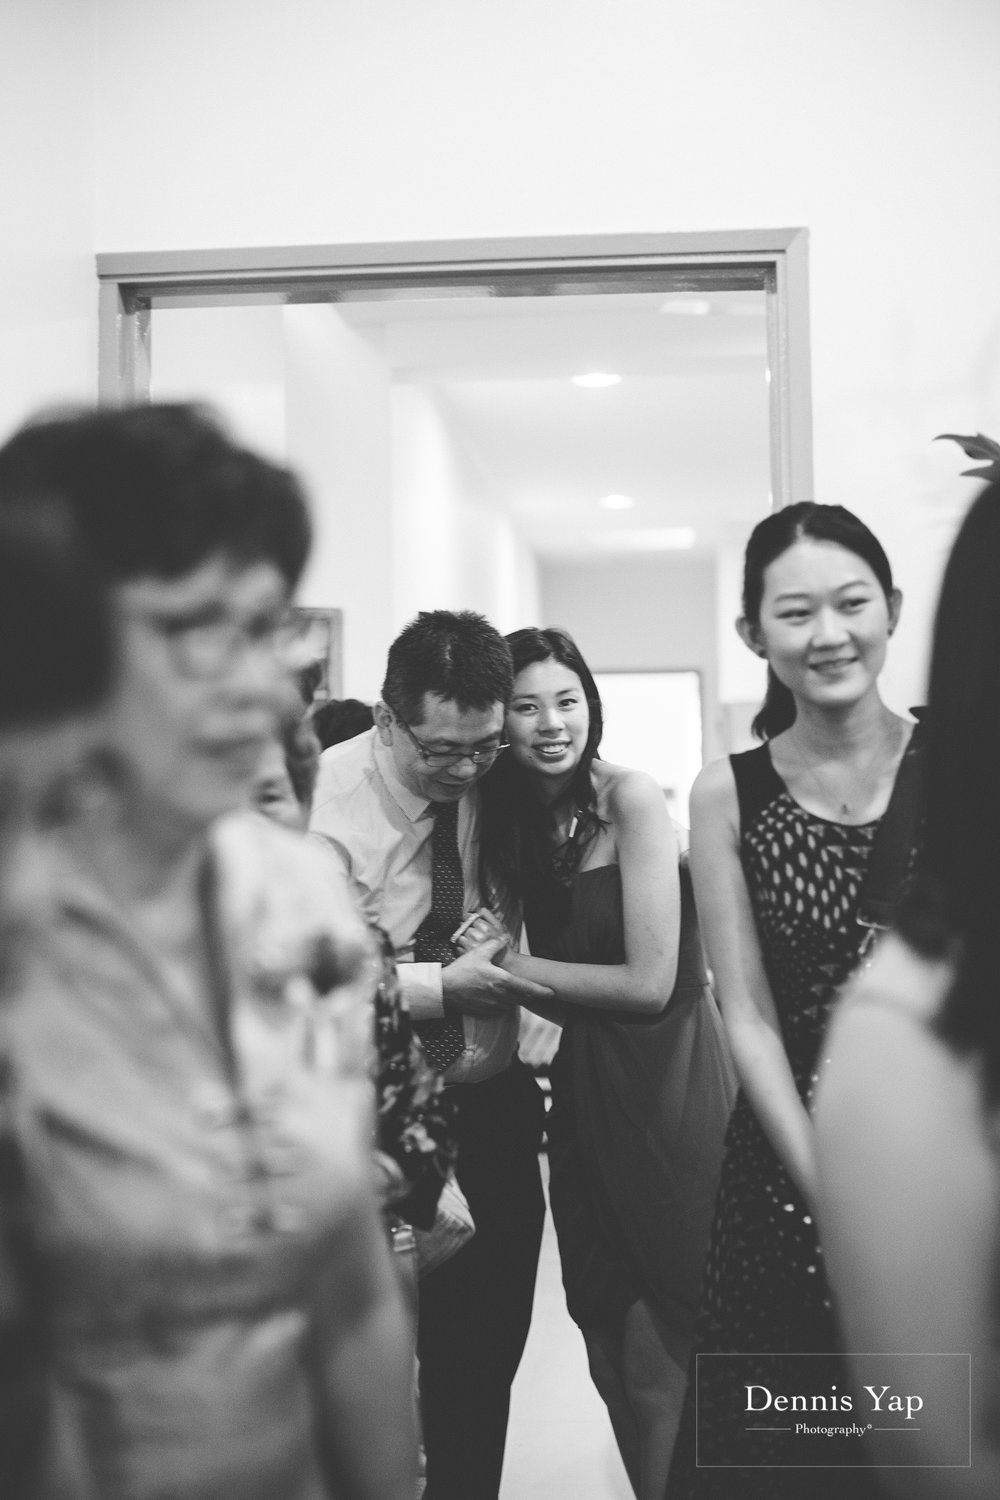 yijun rachel wedding morning ceremony carcosa seri negara malaysia wedding photographer dennis yap gate crash love emotion tears-29.jpg